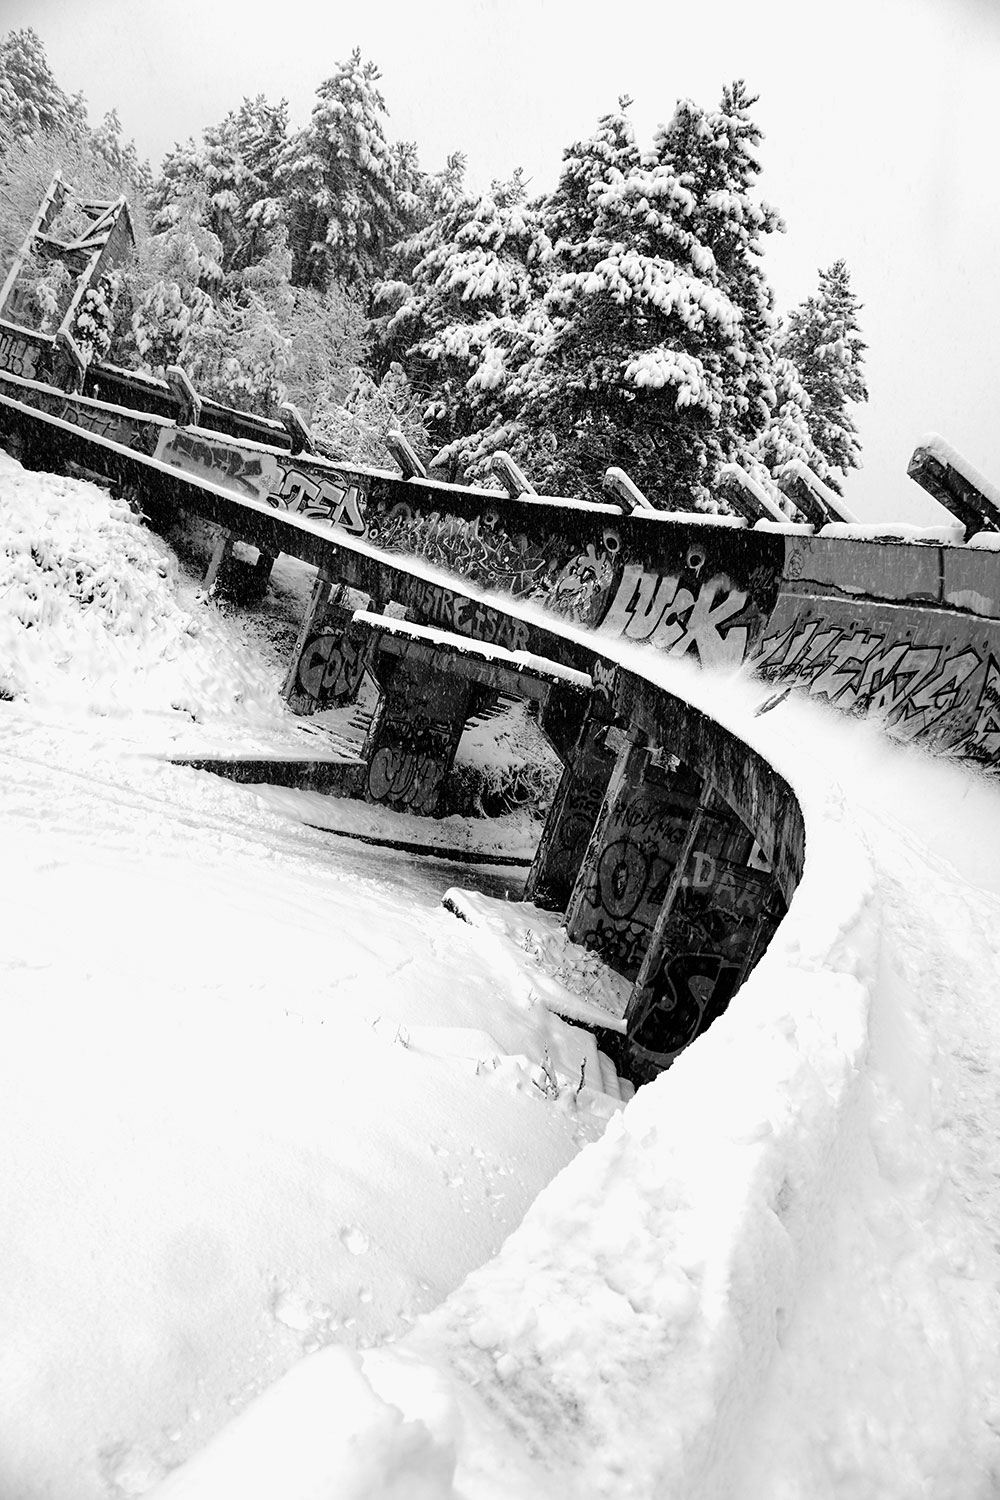 Olympic bobsled Sarajevo, built for 1984 Winter Olympic games